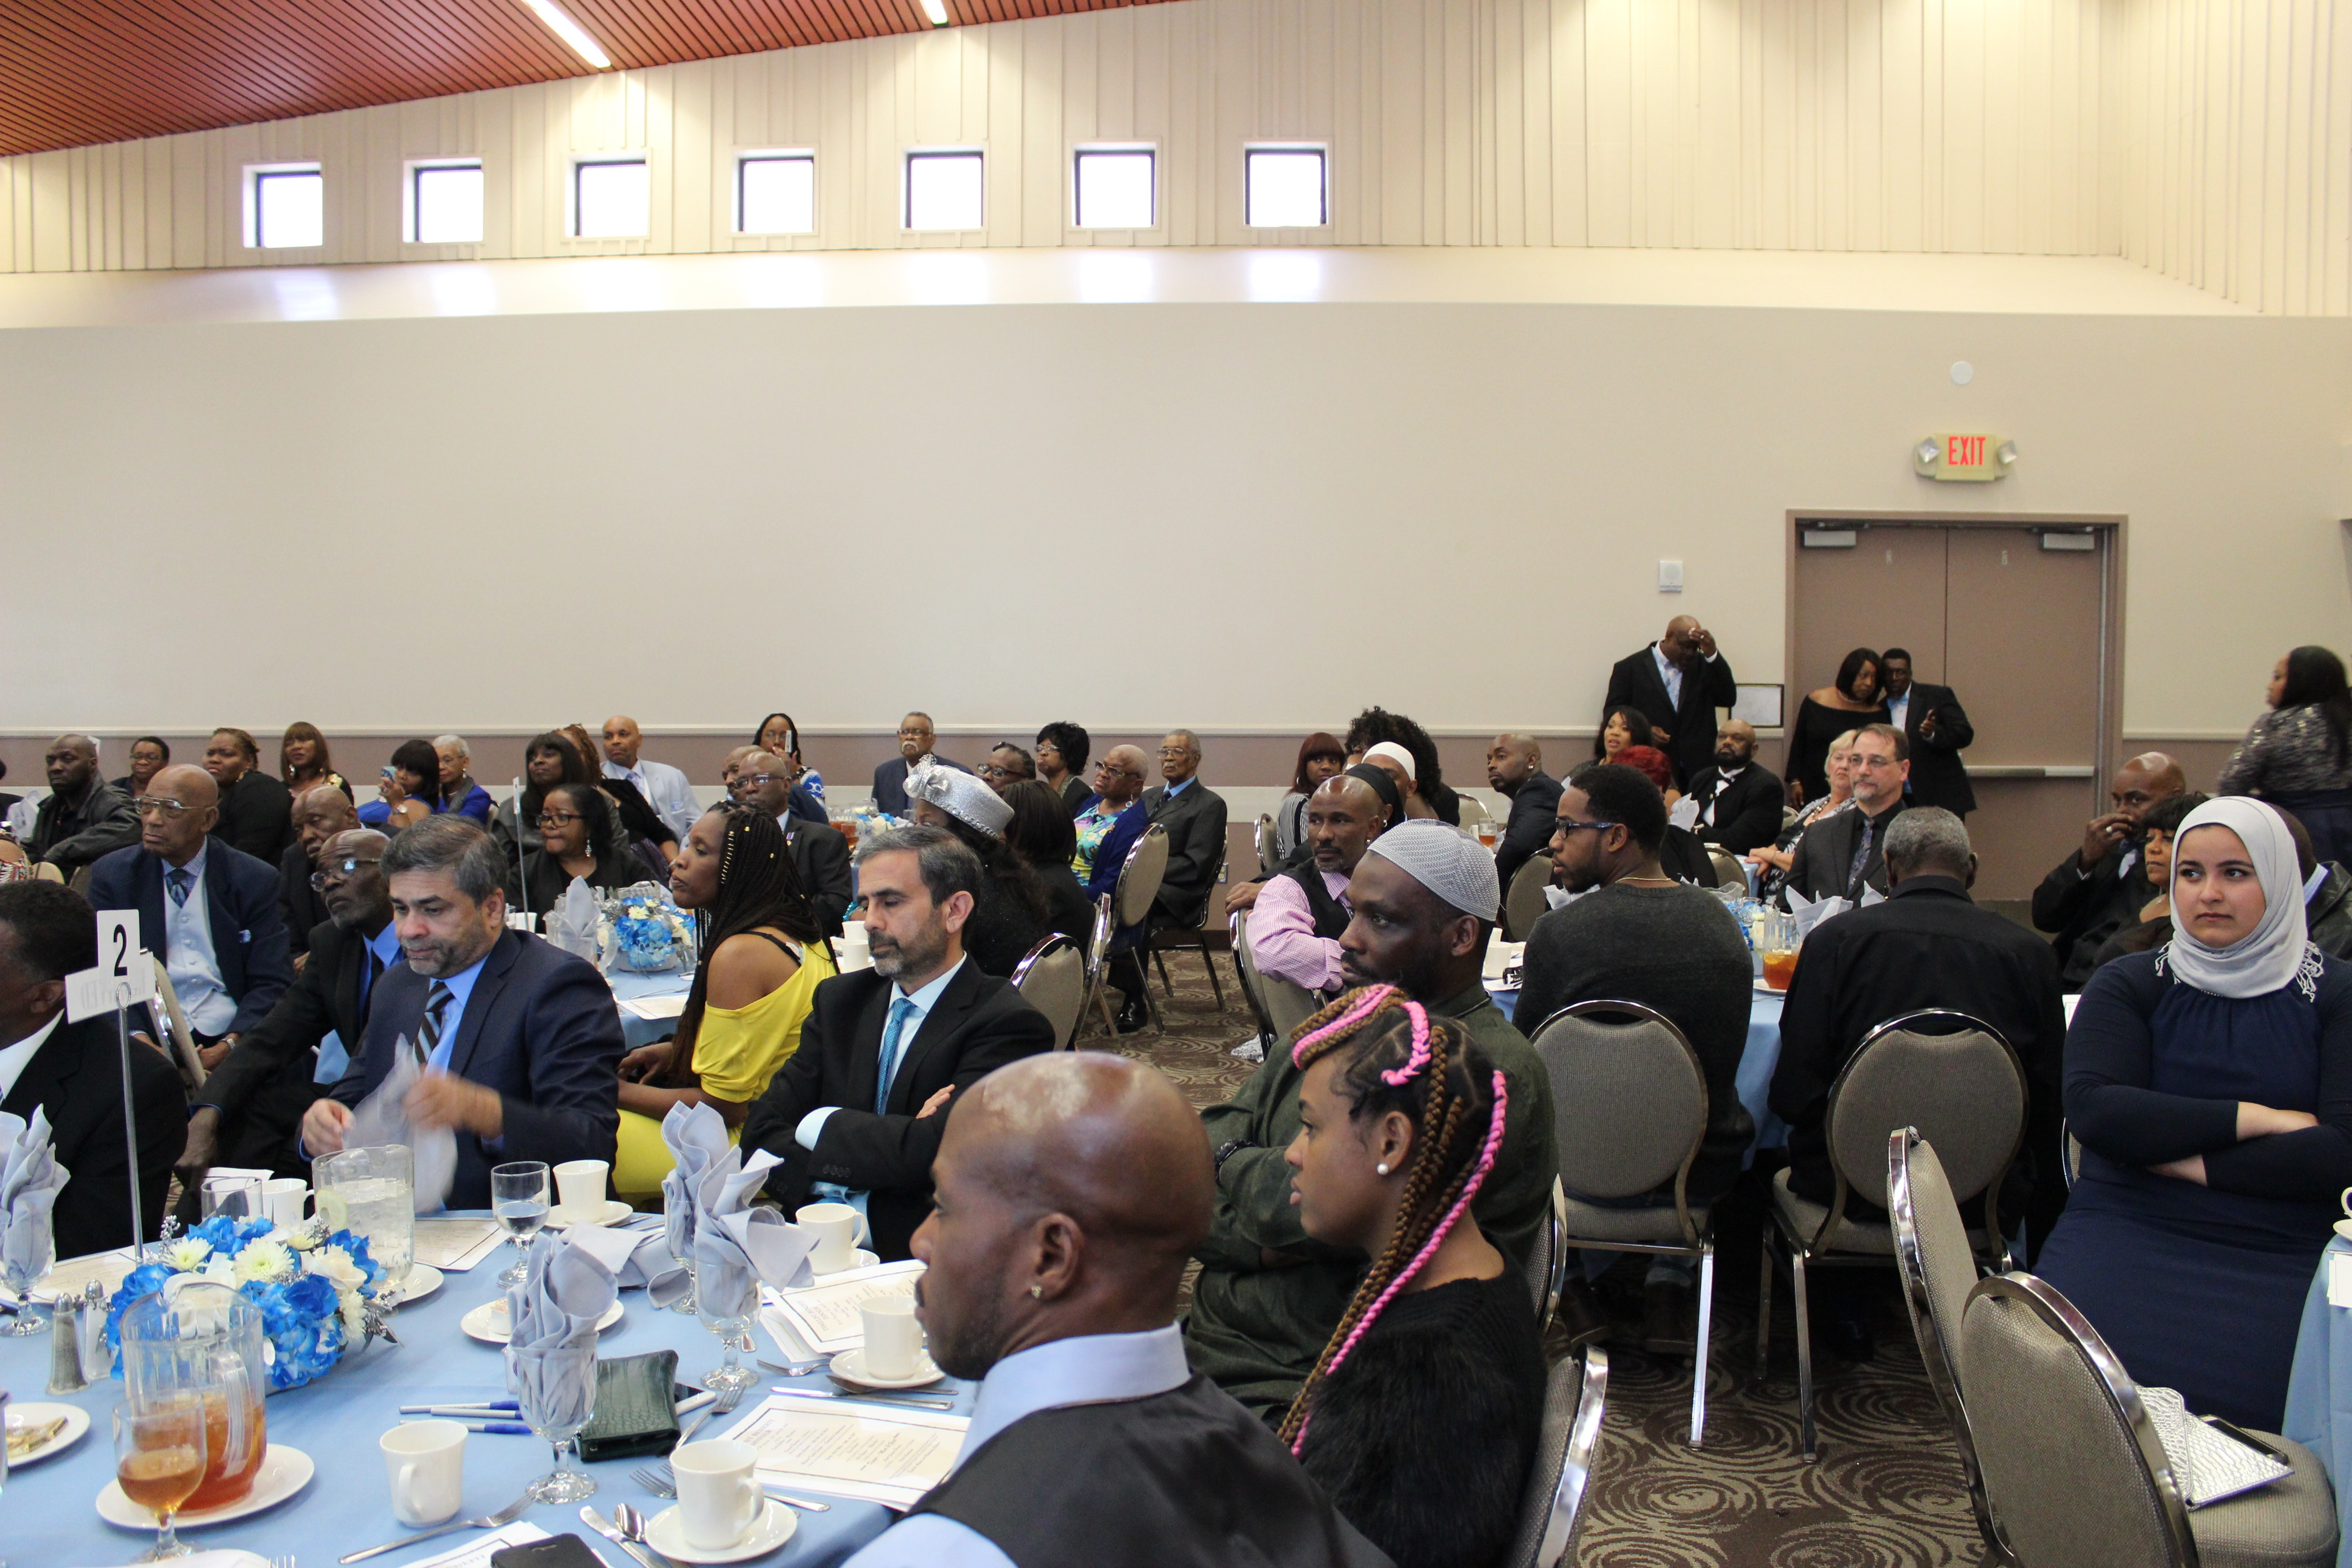 Participants at 1st Annual Dinner